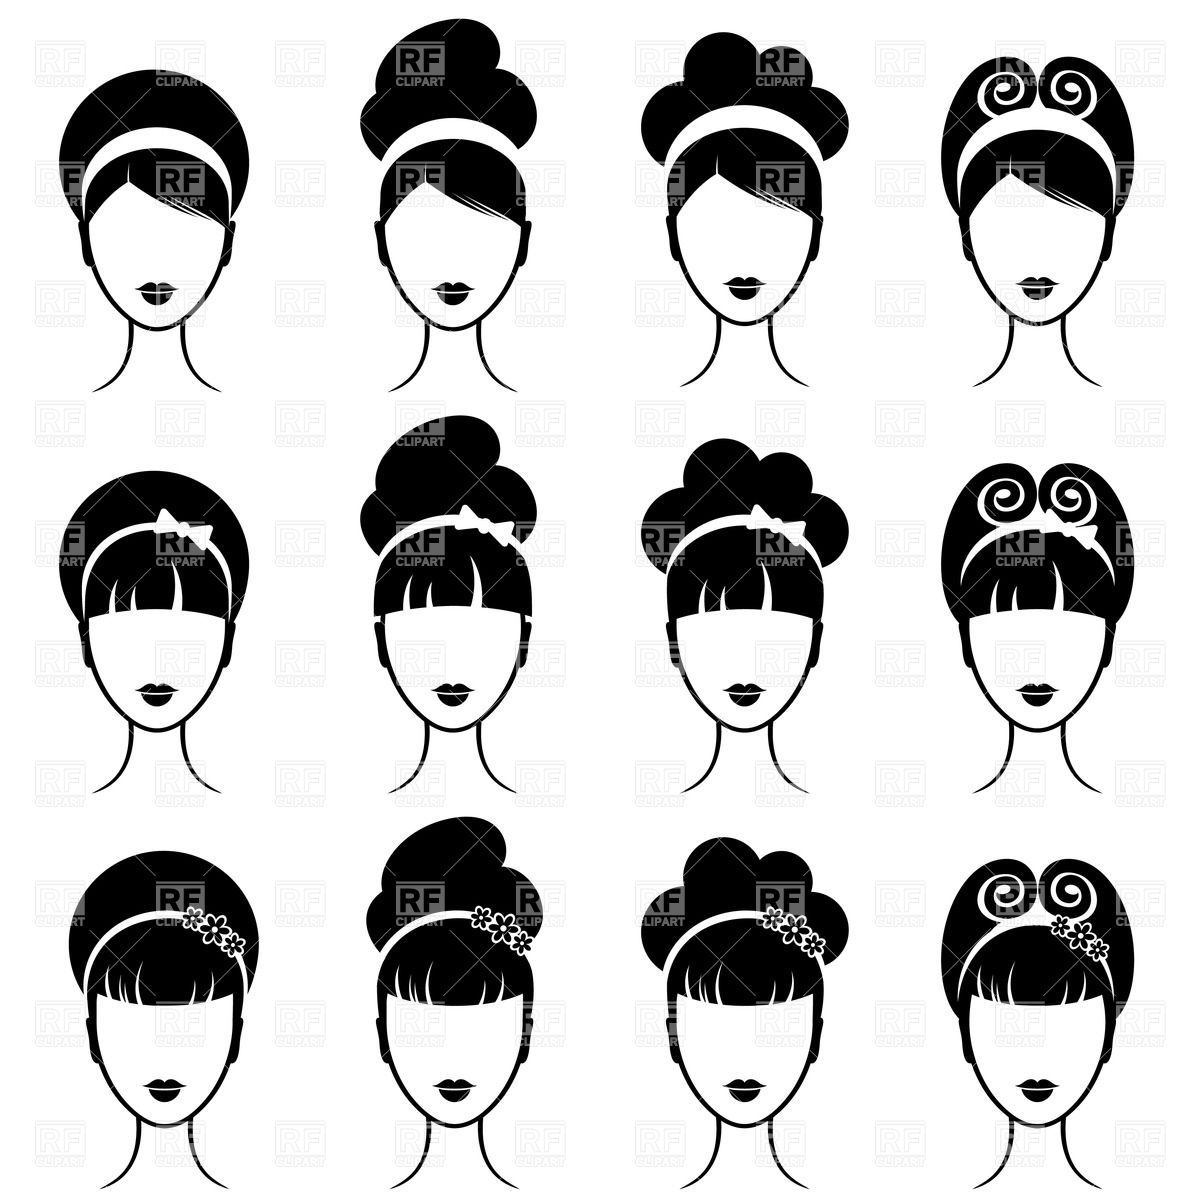 free clipart hairstyles - photo #11